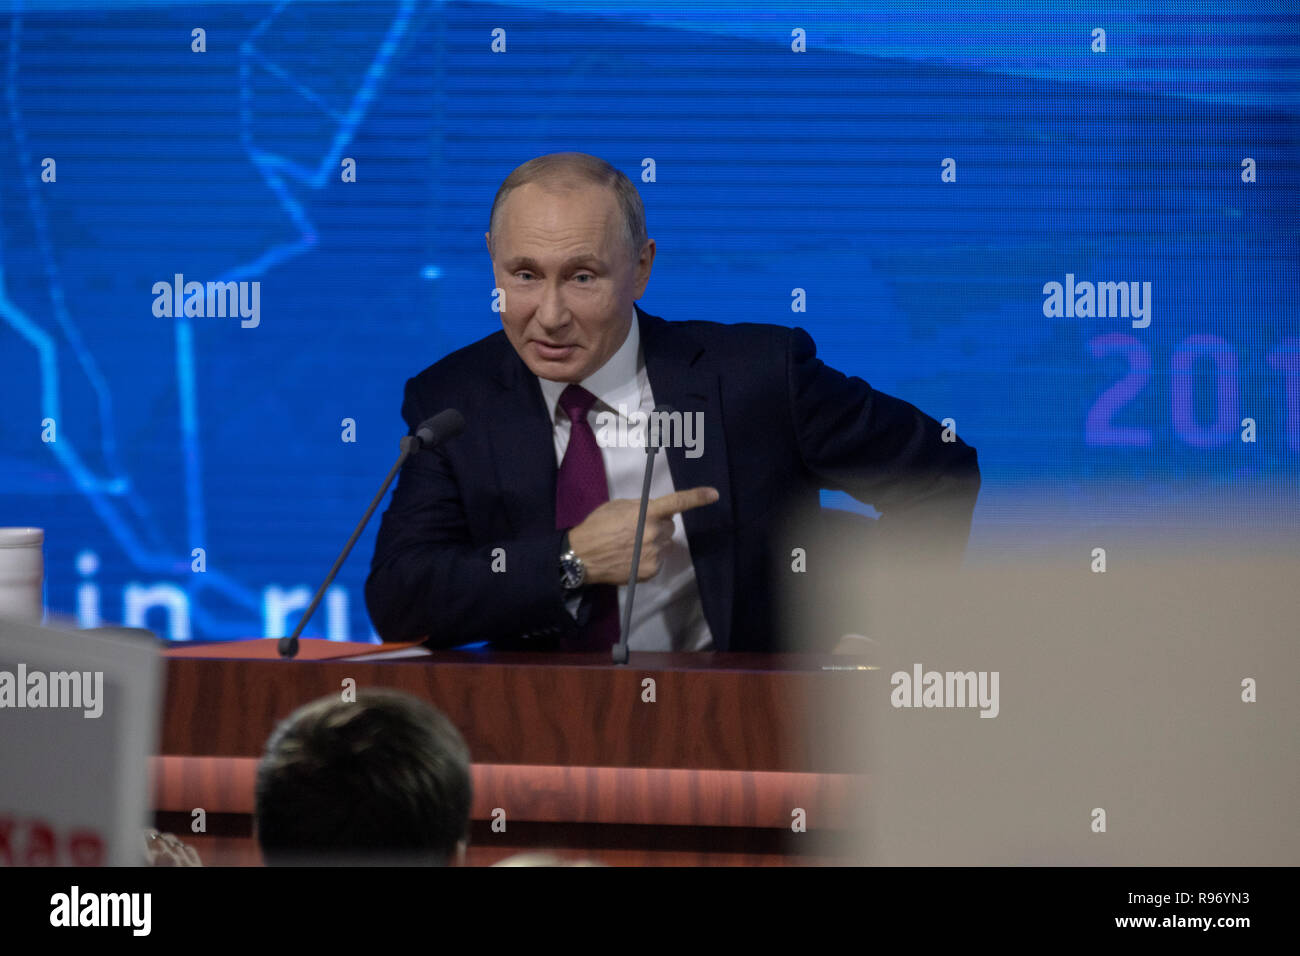 Moscow, Russia. 20th December, 2018: Russia's President Vladimir Putin gives an annual end-of-year press conference at Moscow's World Trade Centre Credit: Nikolay Vinokurov/Alamy Live News - Stock Image